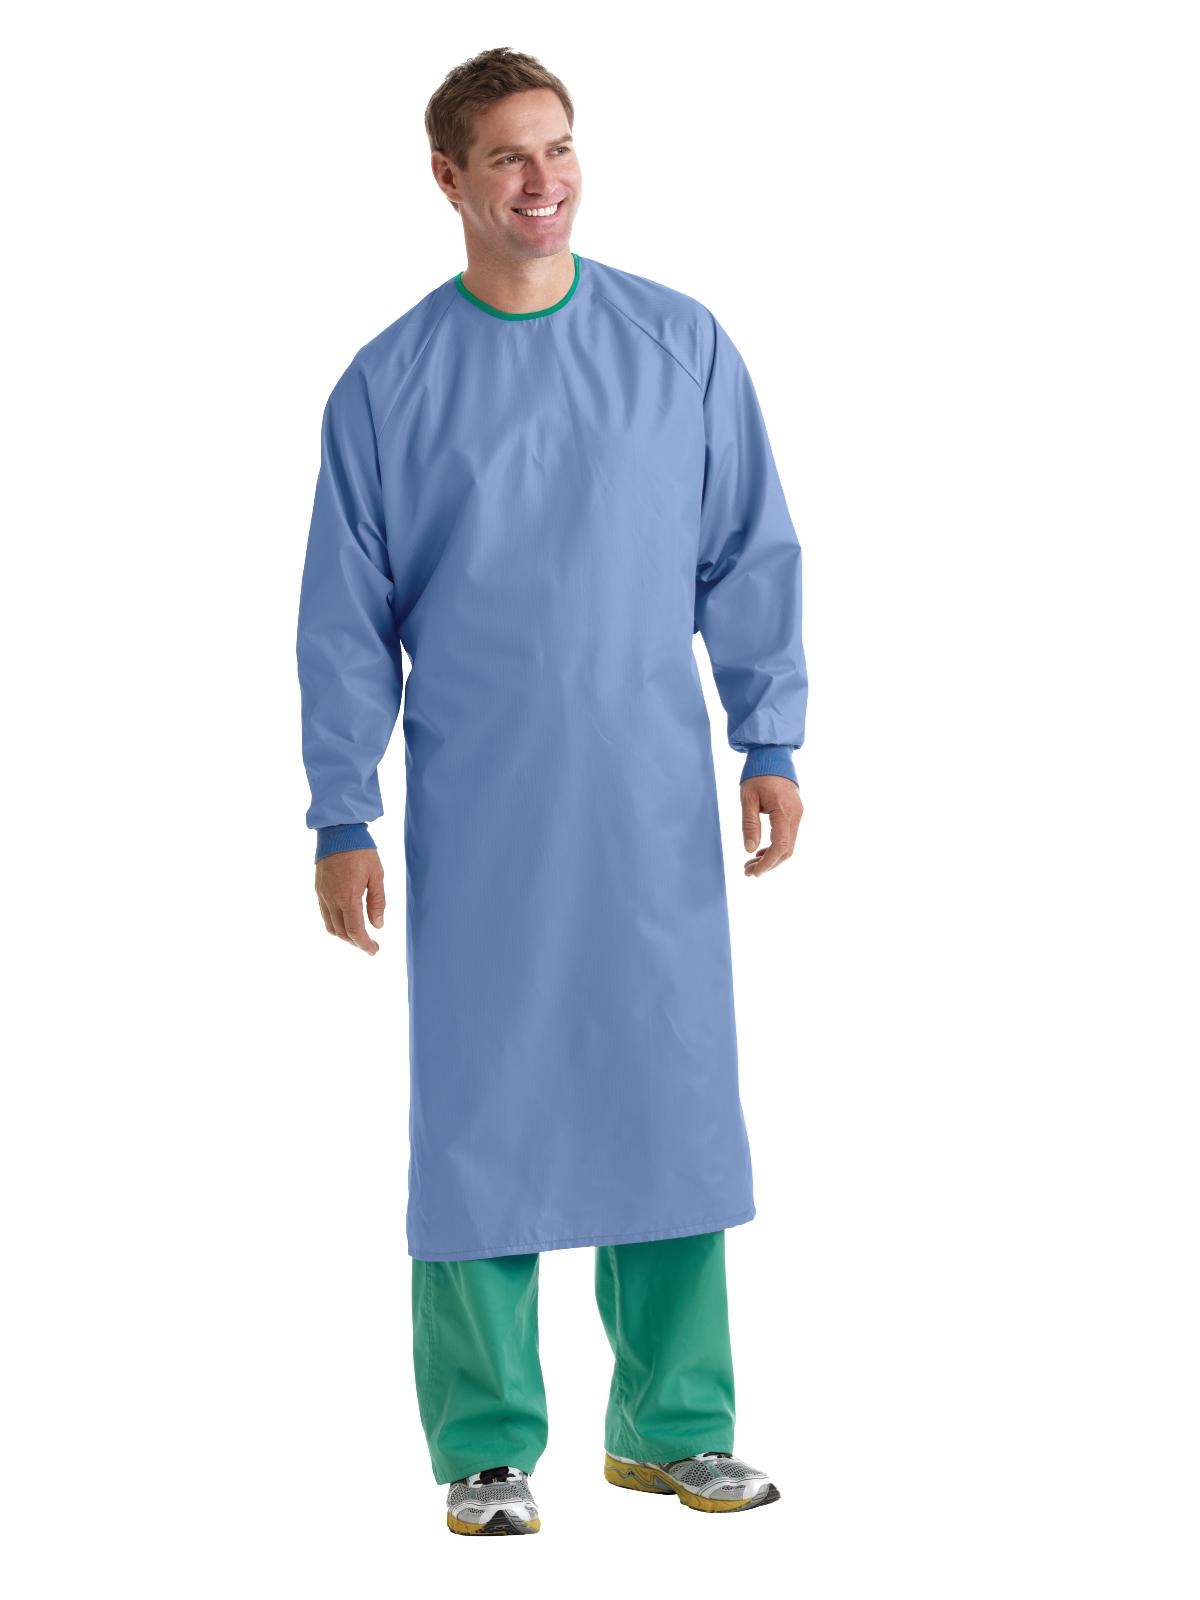 1-Ply Blockade AngelStat Surgical Gowns | Medline Industries, Inc.